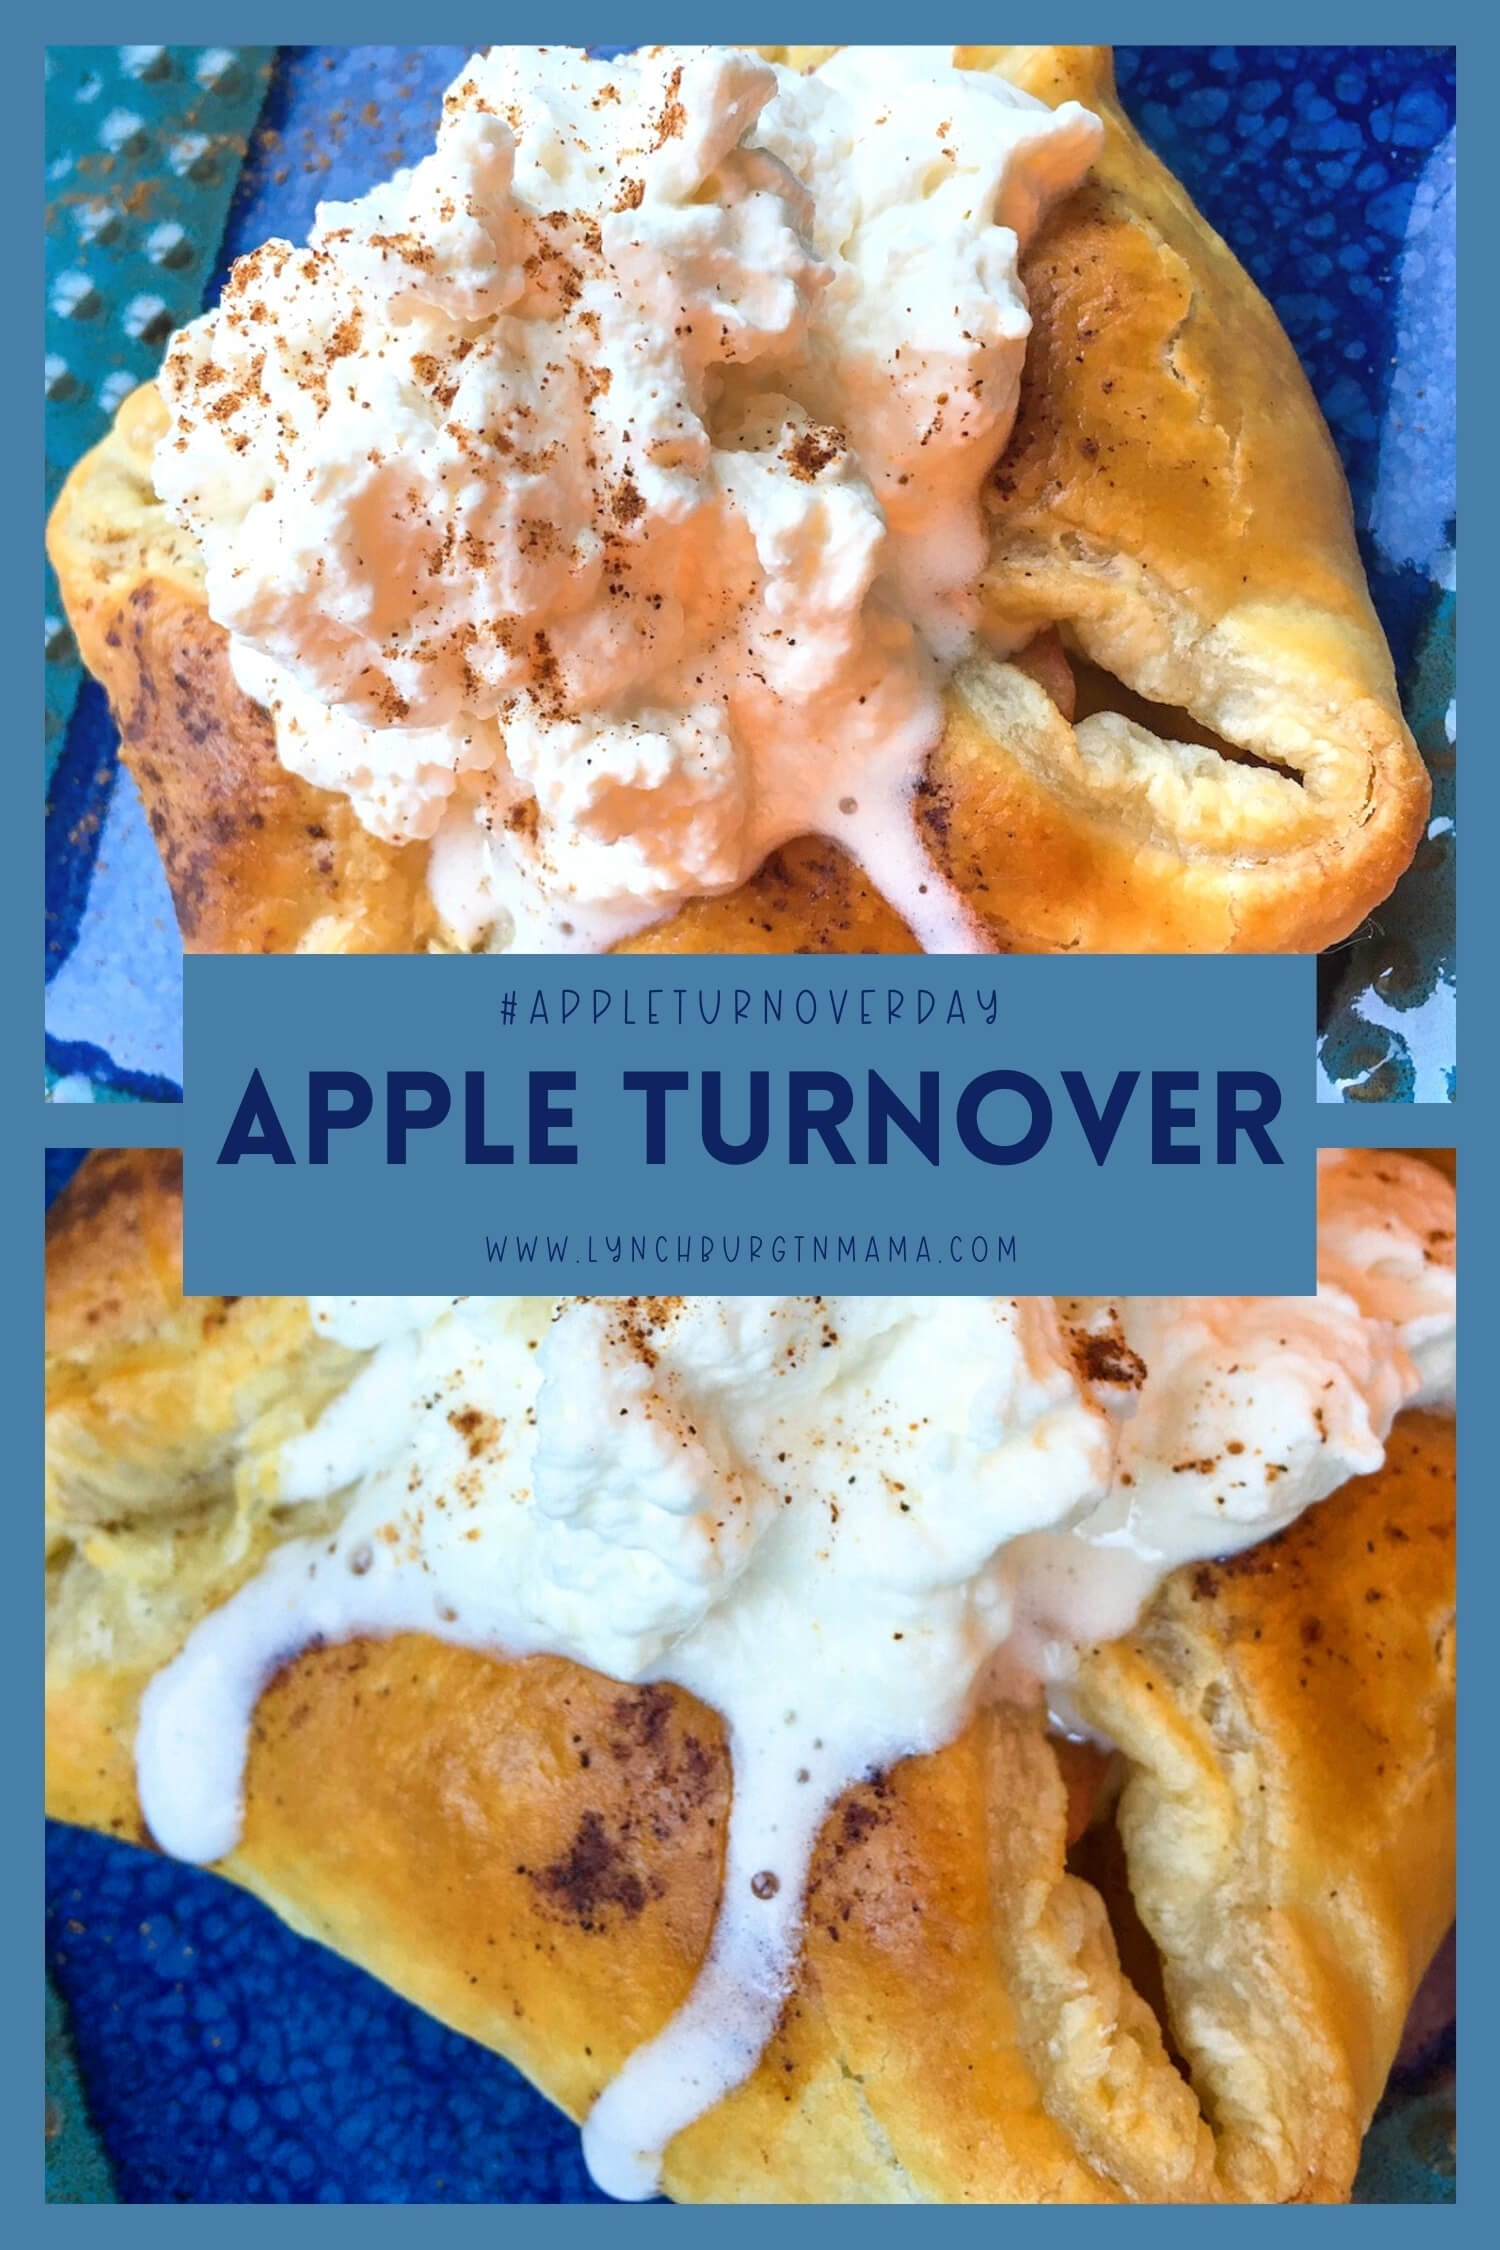 Apple Turnovers are a fruit-filled pastry that are easy to make. Topped with Maple Whipped Cream, these can easily be a tasty breakfast or dessert!